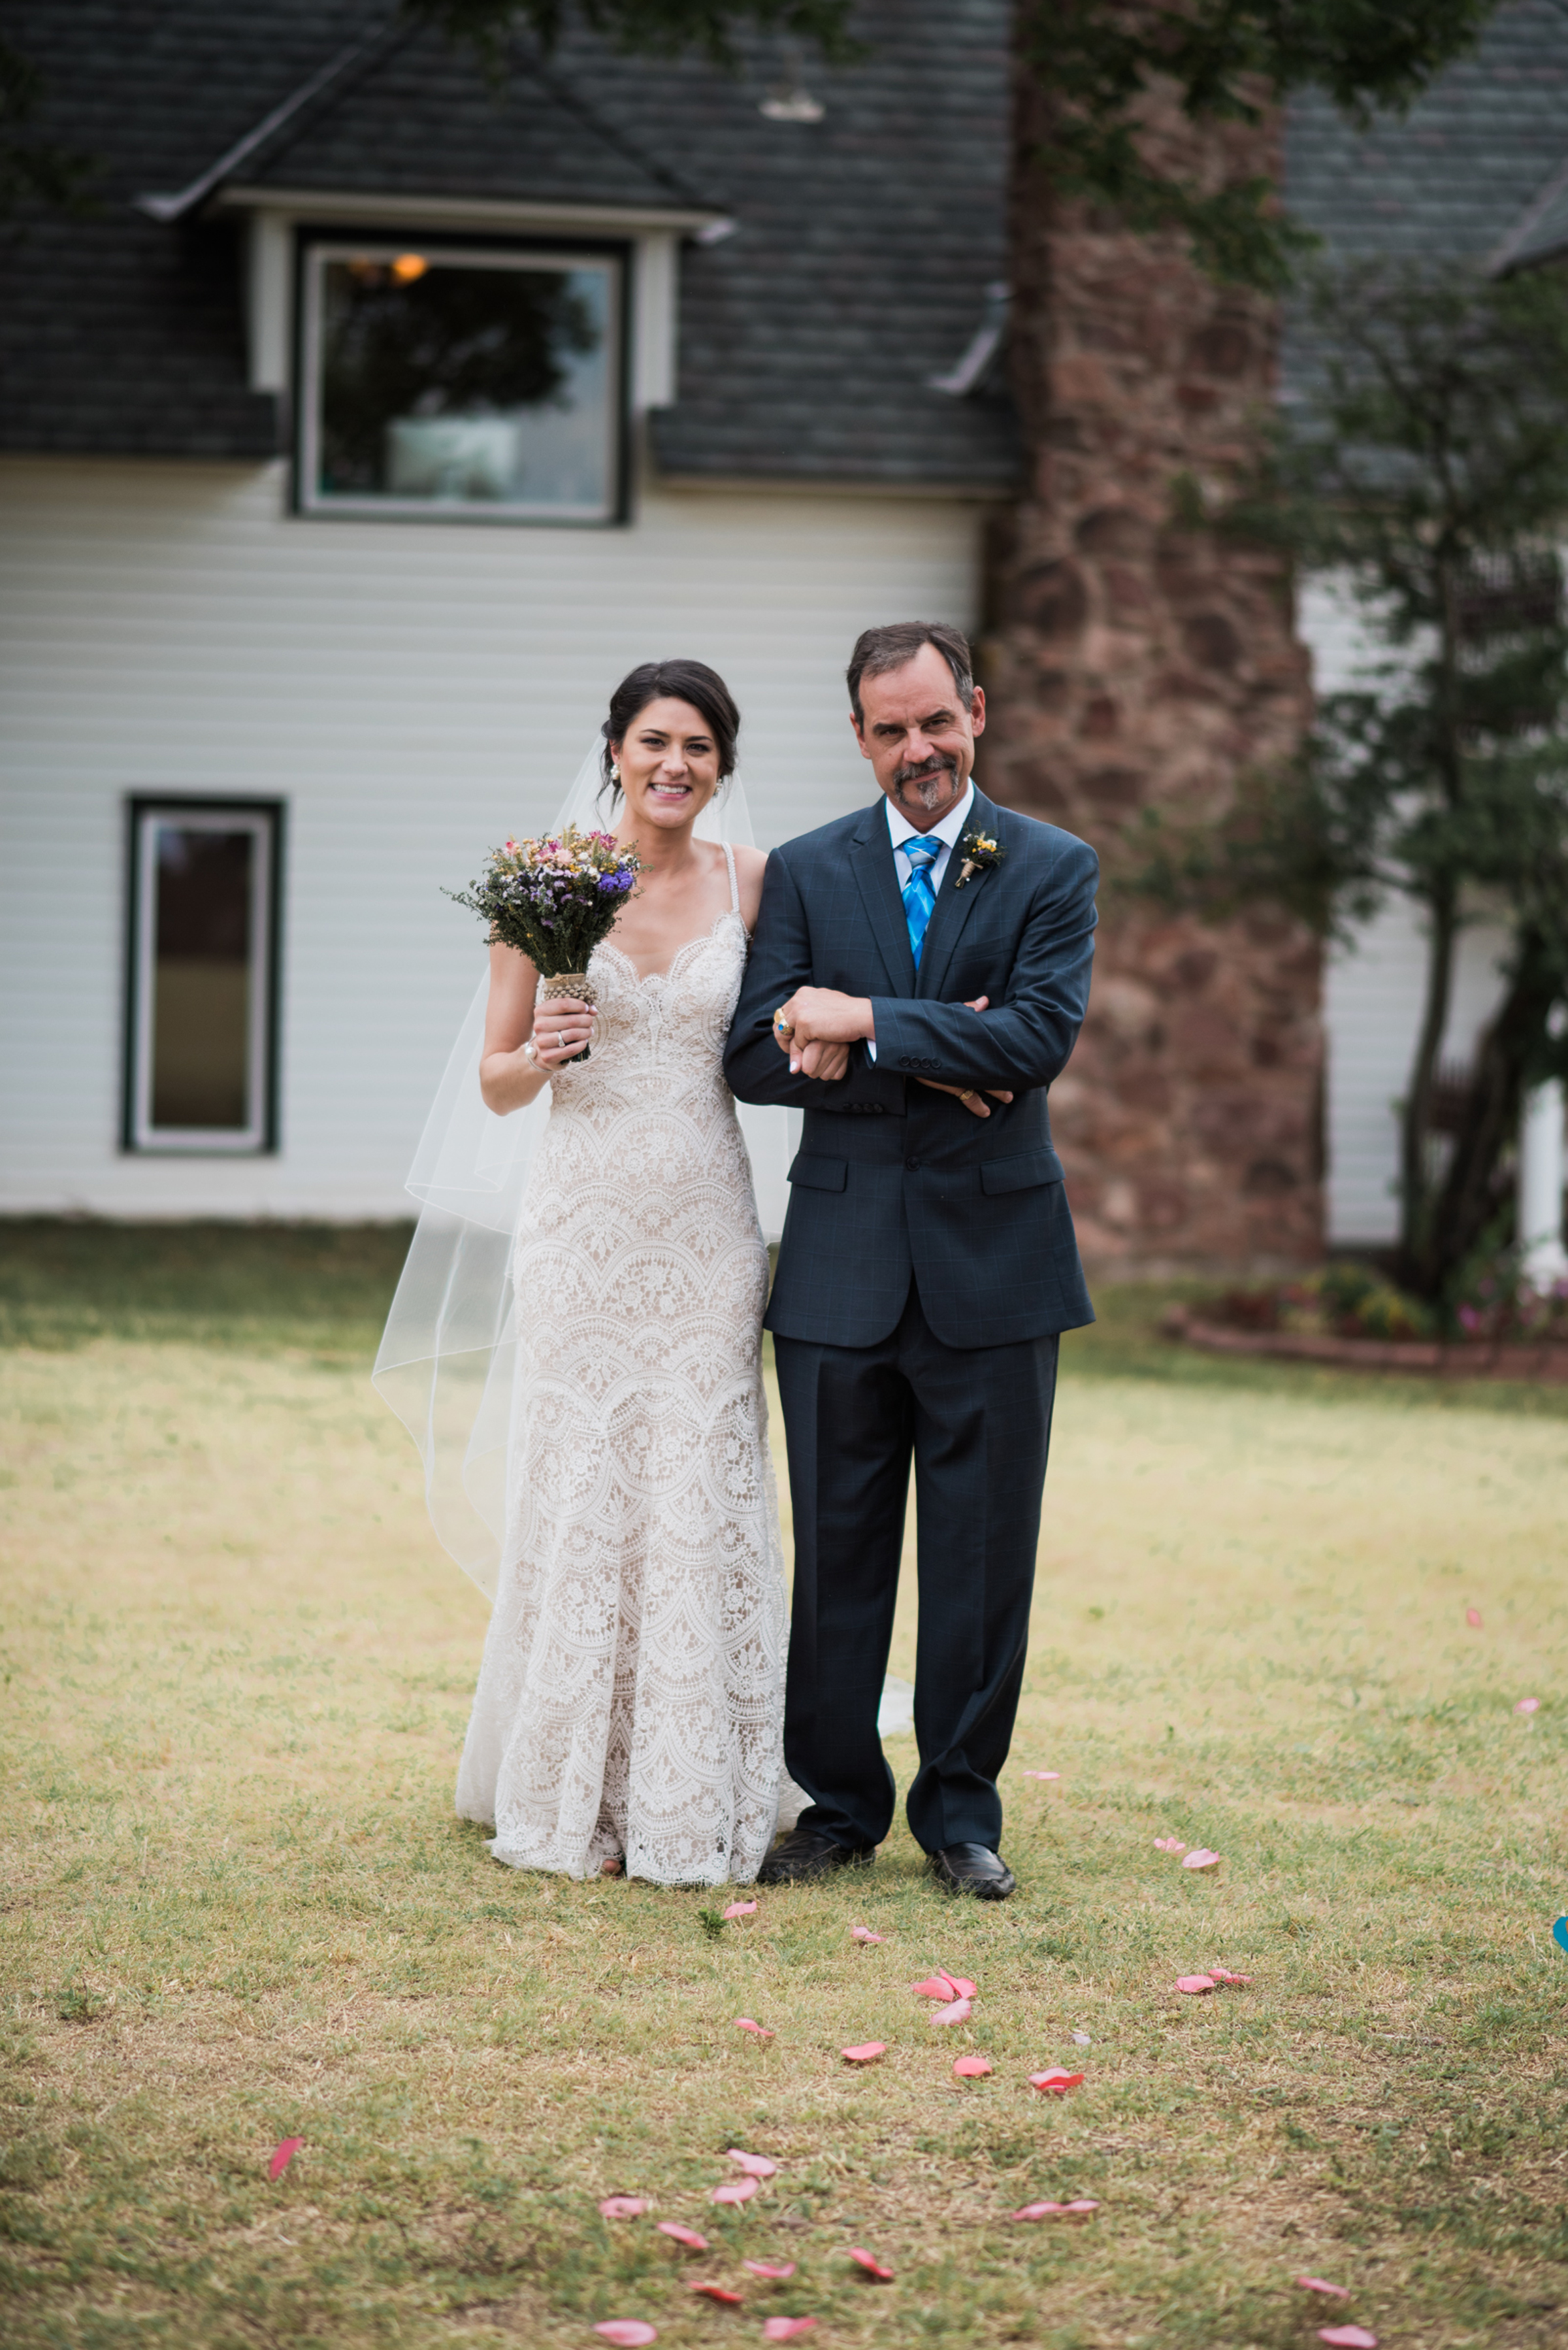 Alatje Dave Wedding The Barn At The Woods Edmond